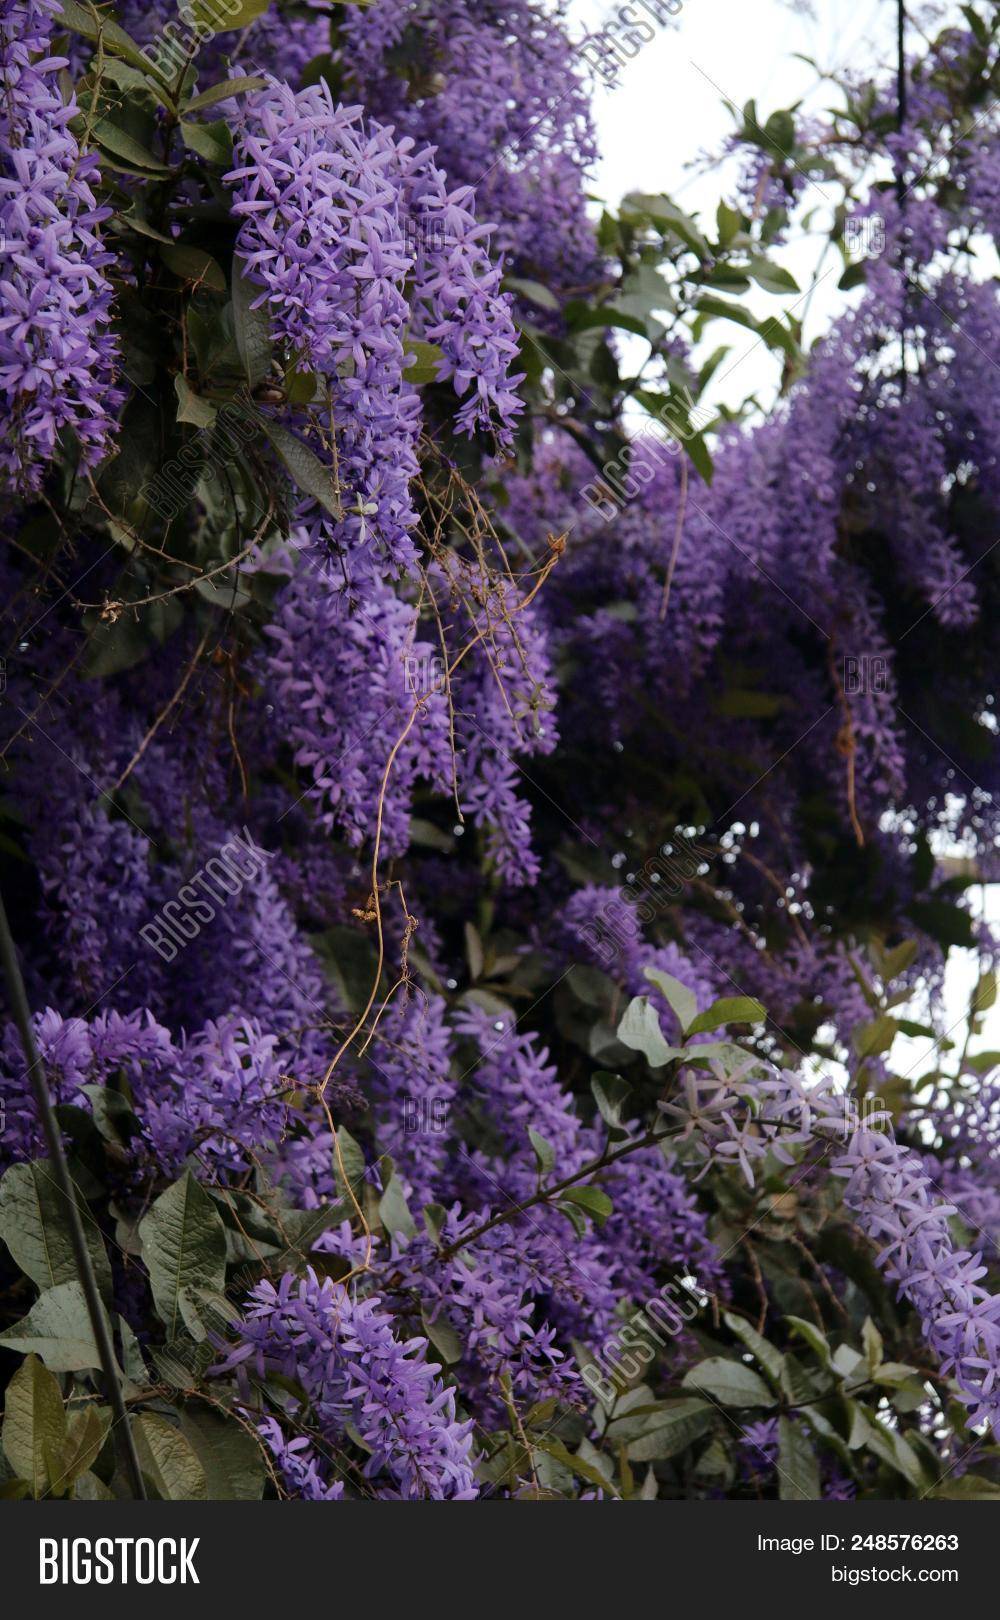 Big Bunches Of Purple Hanging Flowers Of The Petrea Vine Growing In A Garden.